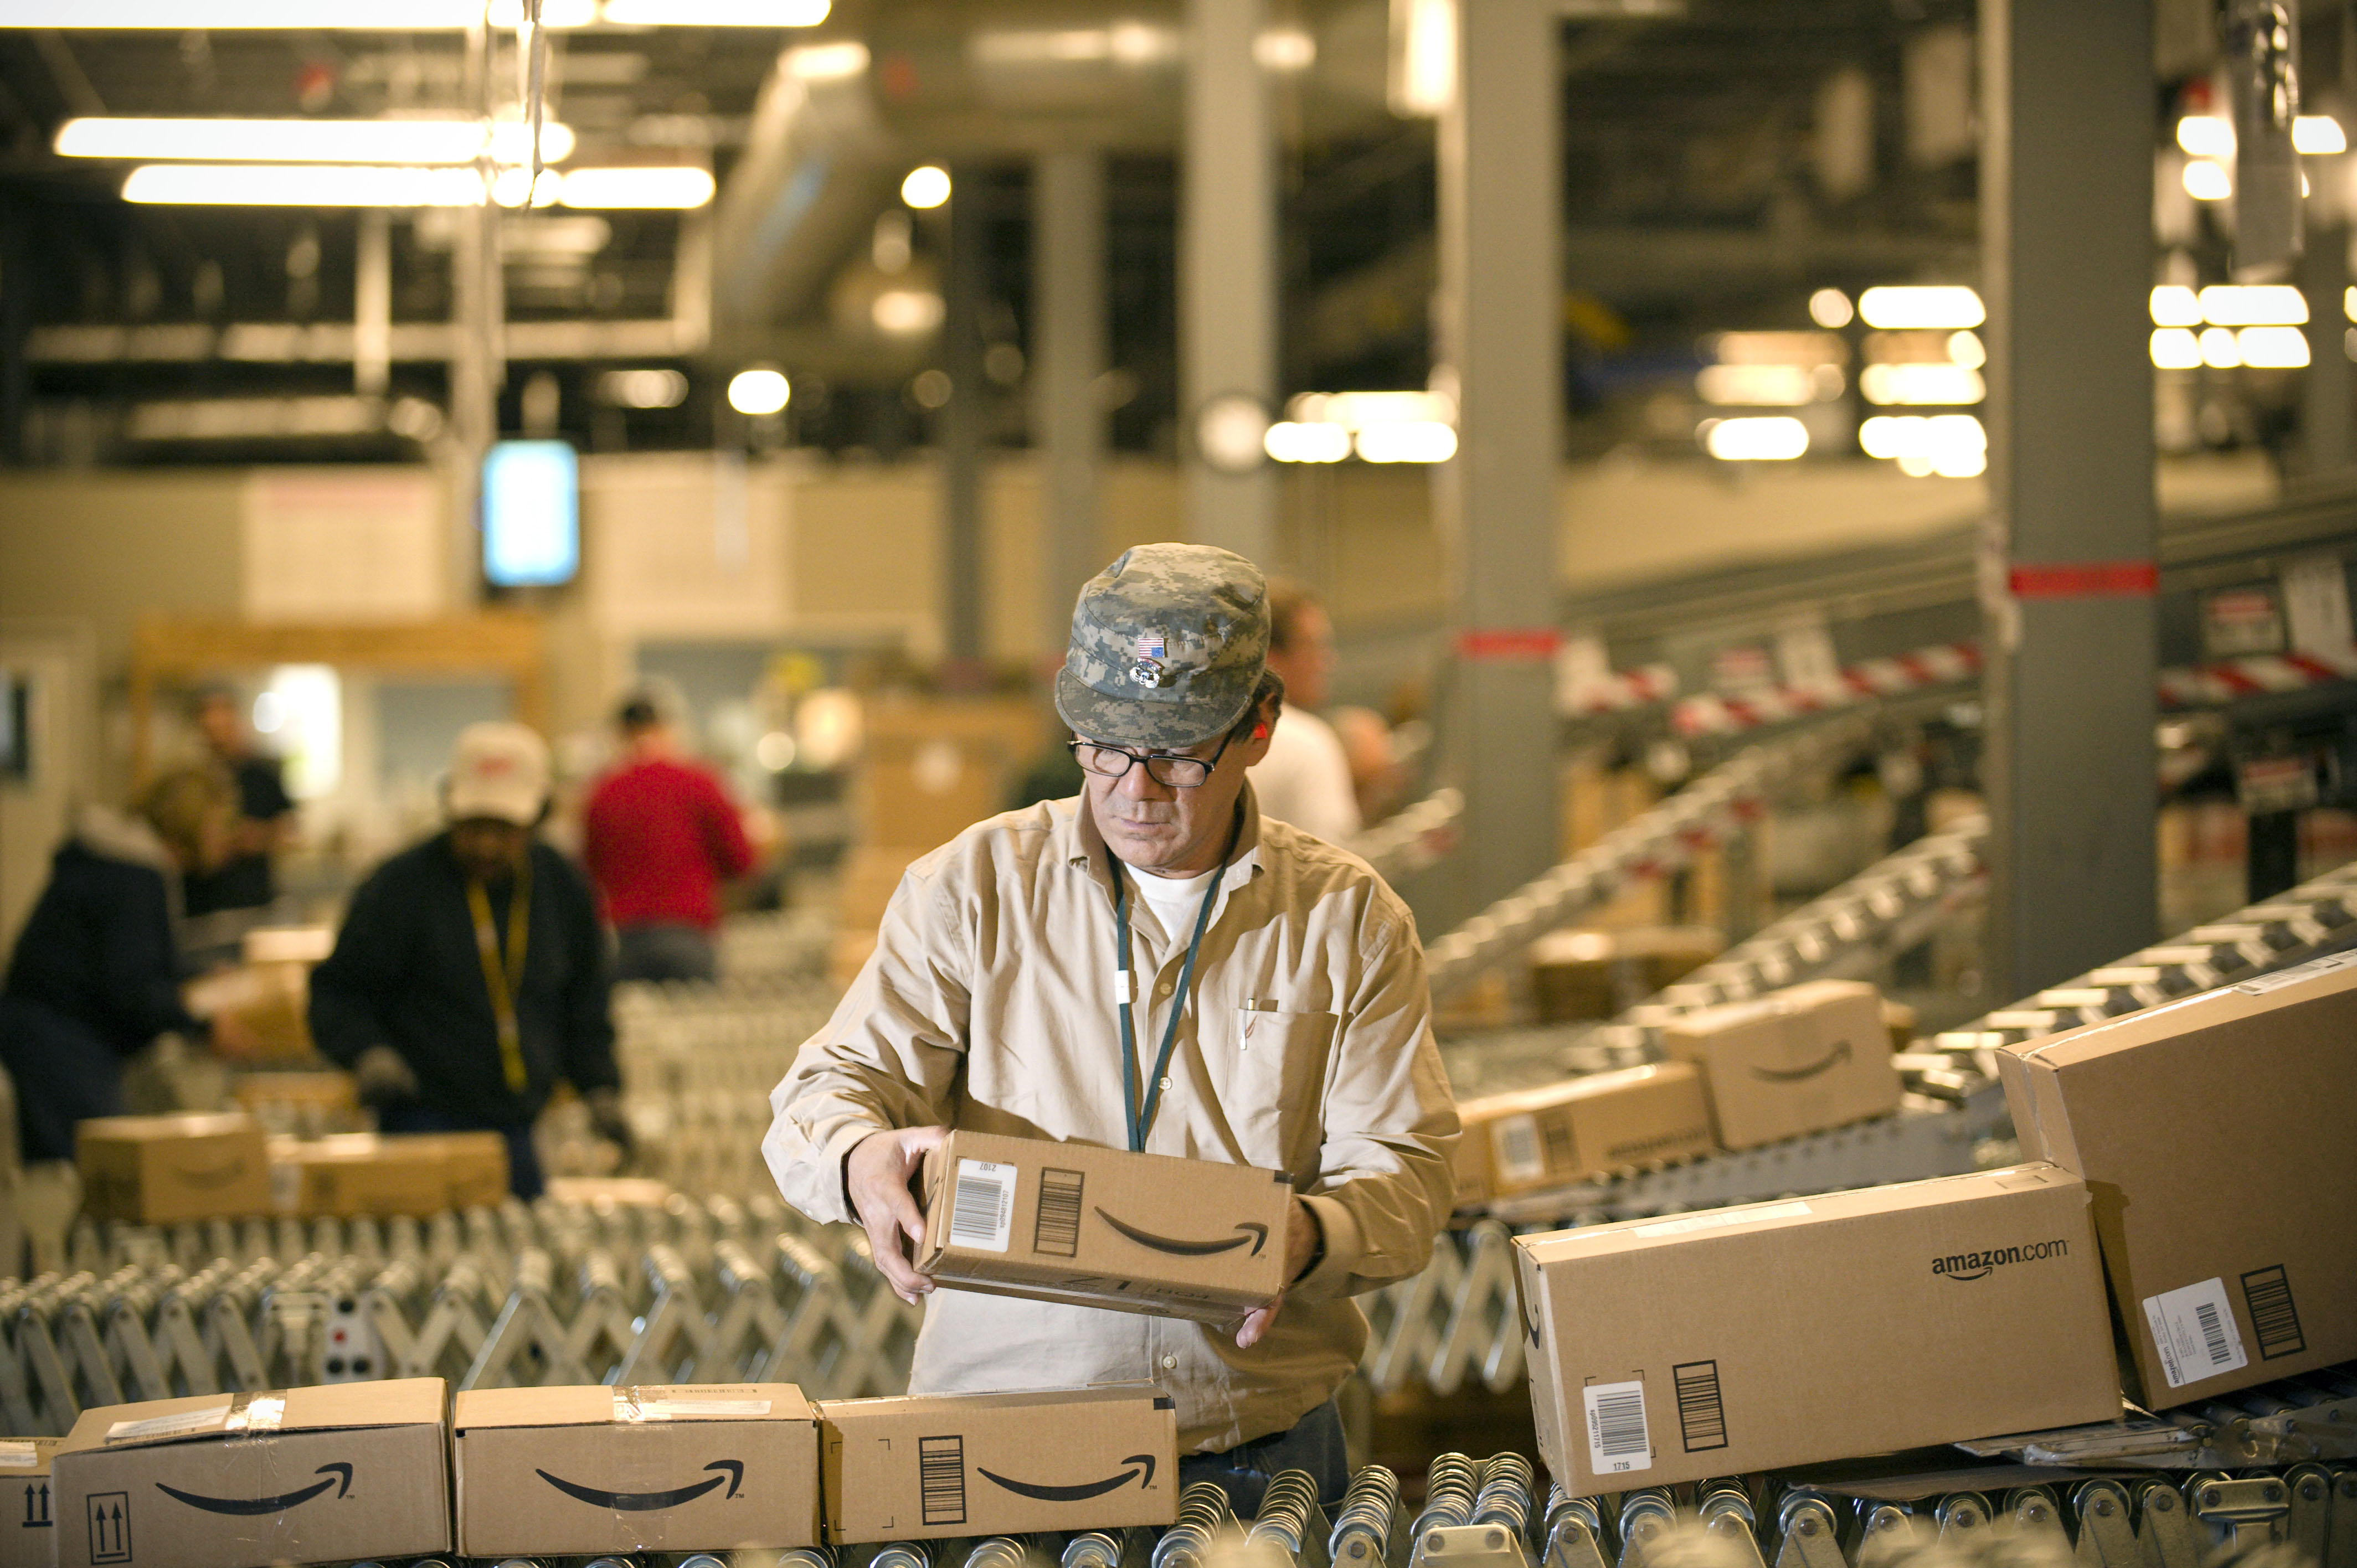 Blue laws won't hold Amazon back in Mass  - The Boston Globe